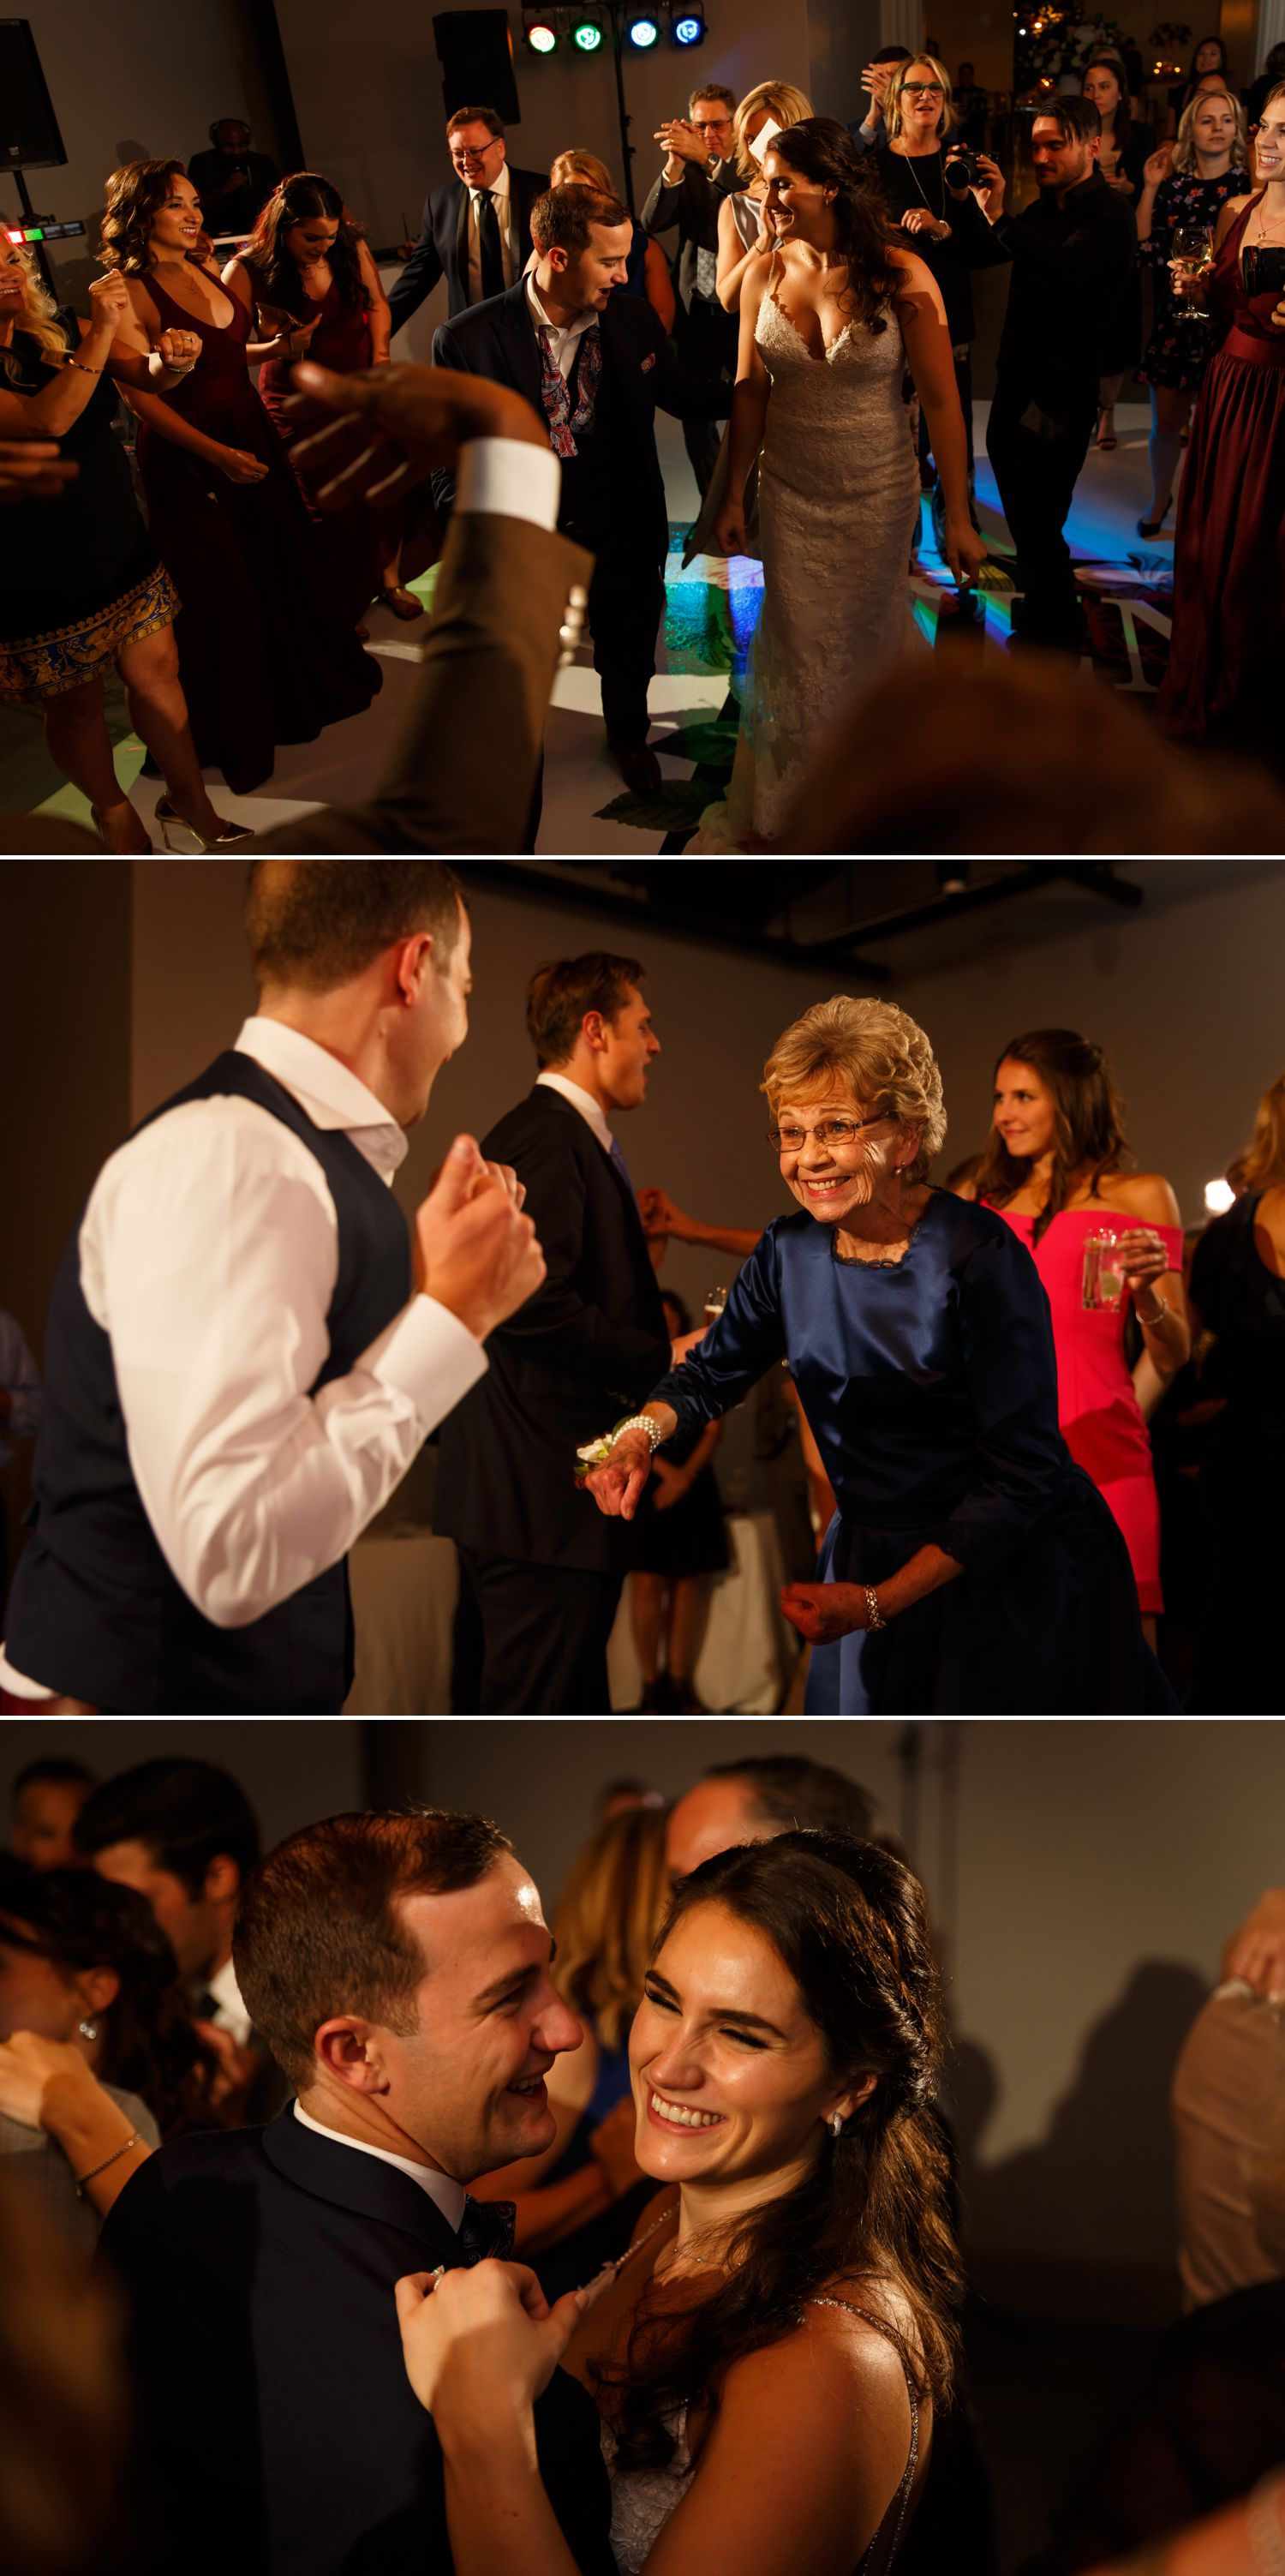 The bride and groom dancing with their guests at their wedding reception inside The Museum of Nature in downtown Ottawa